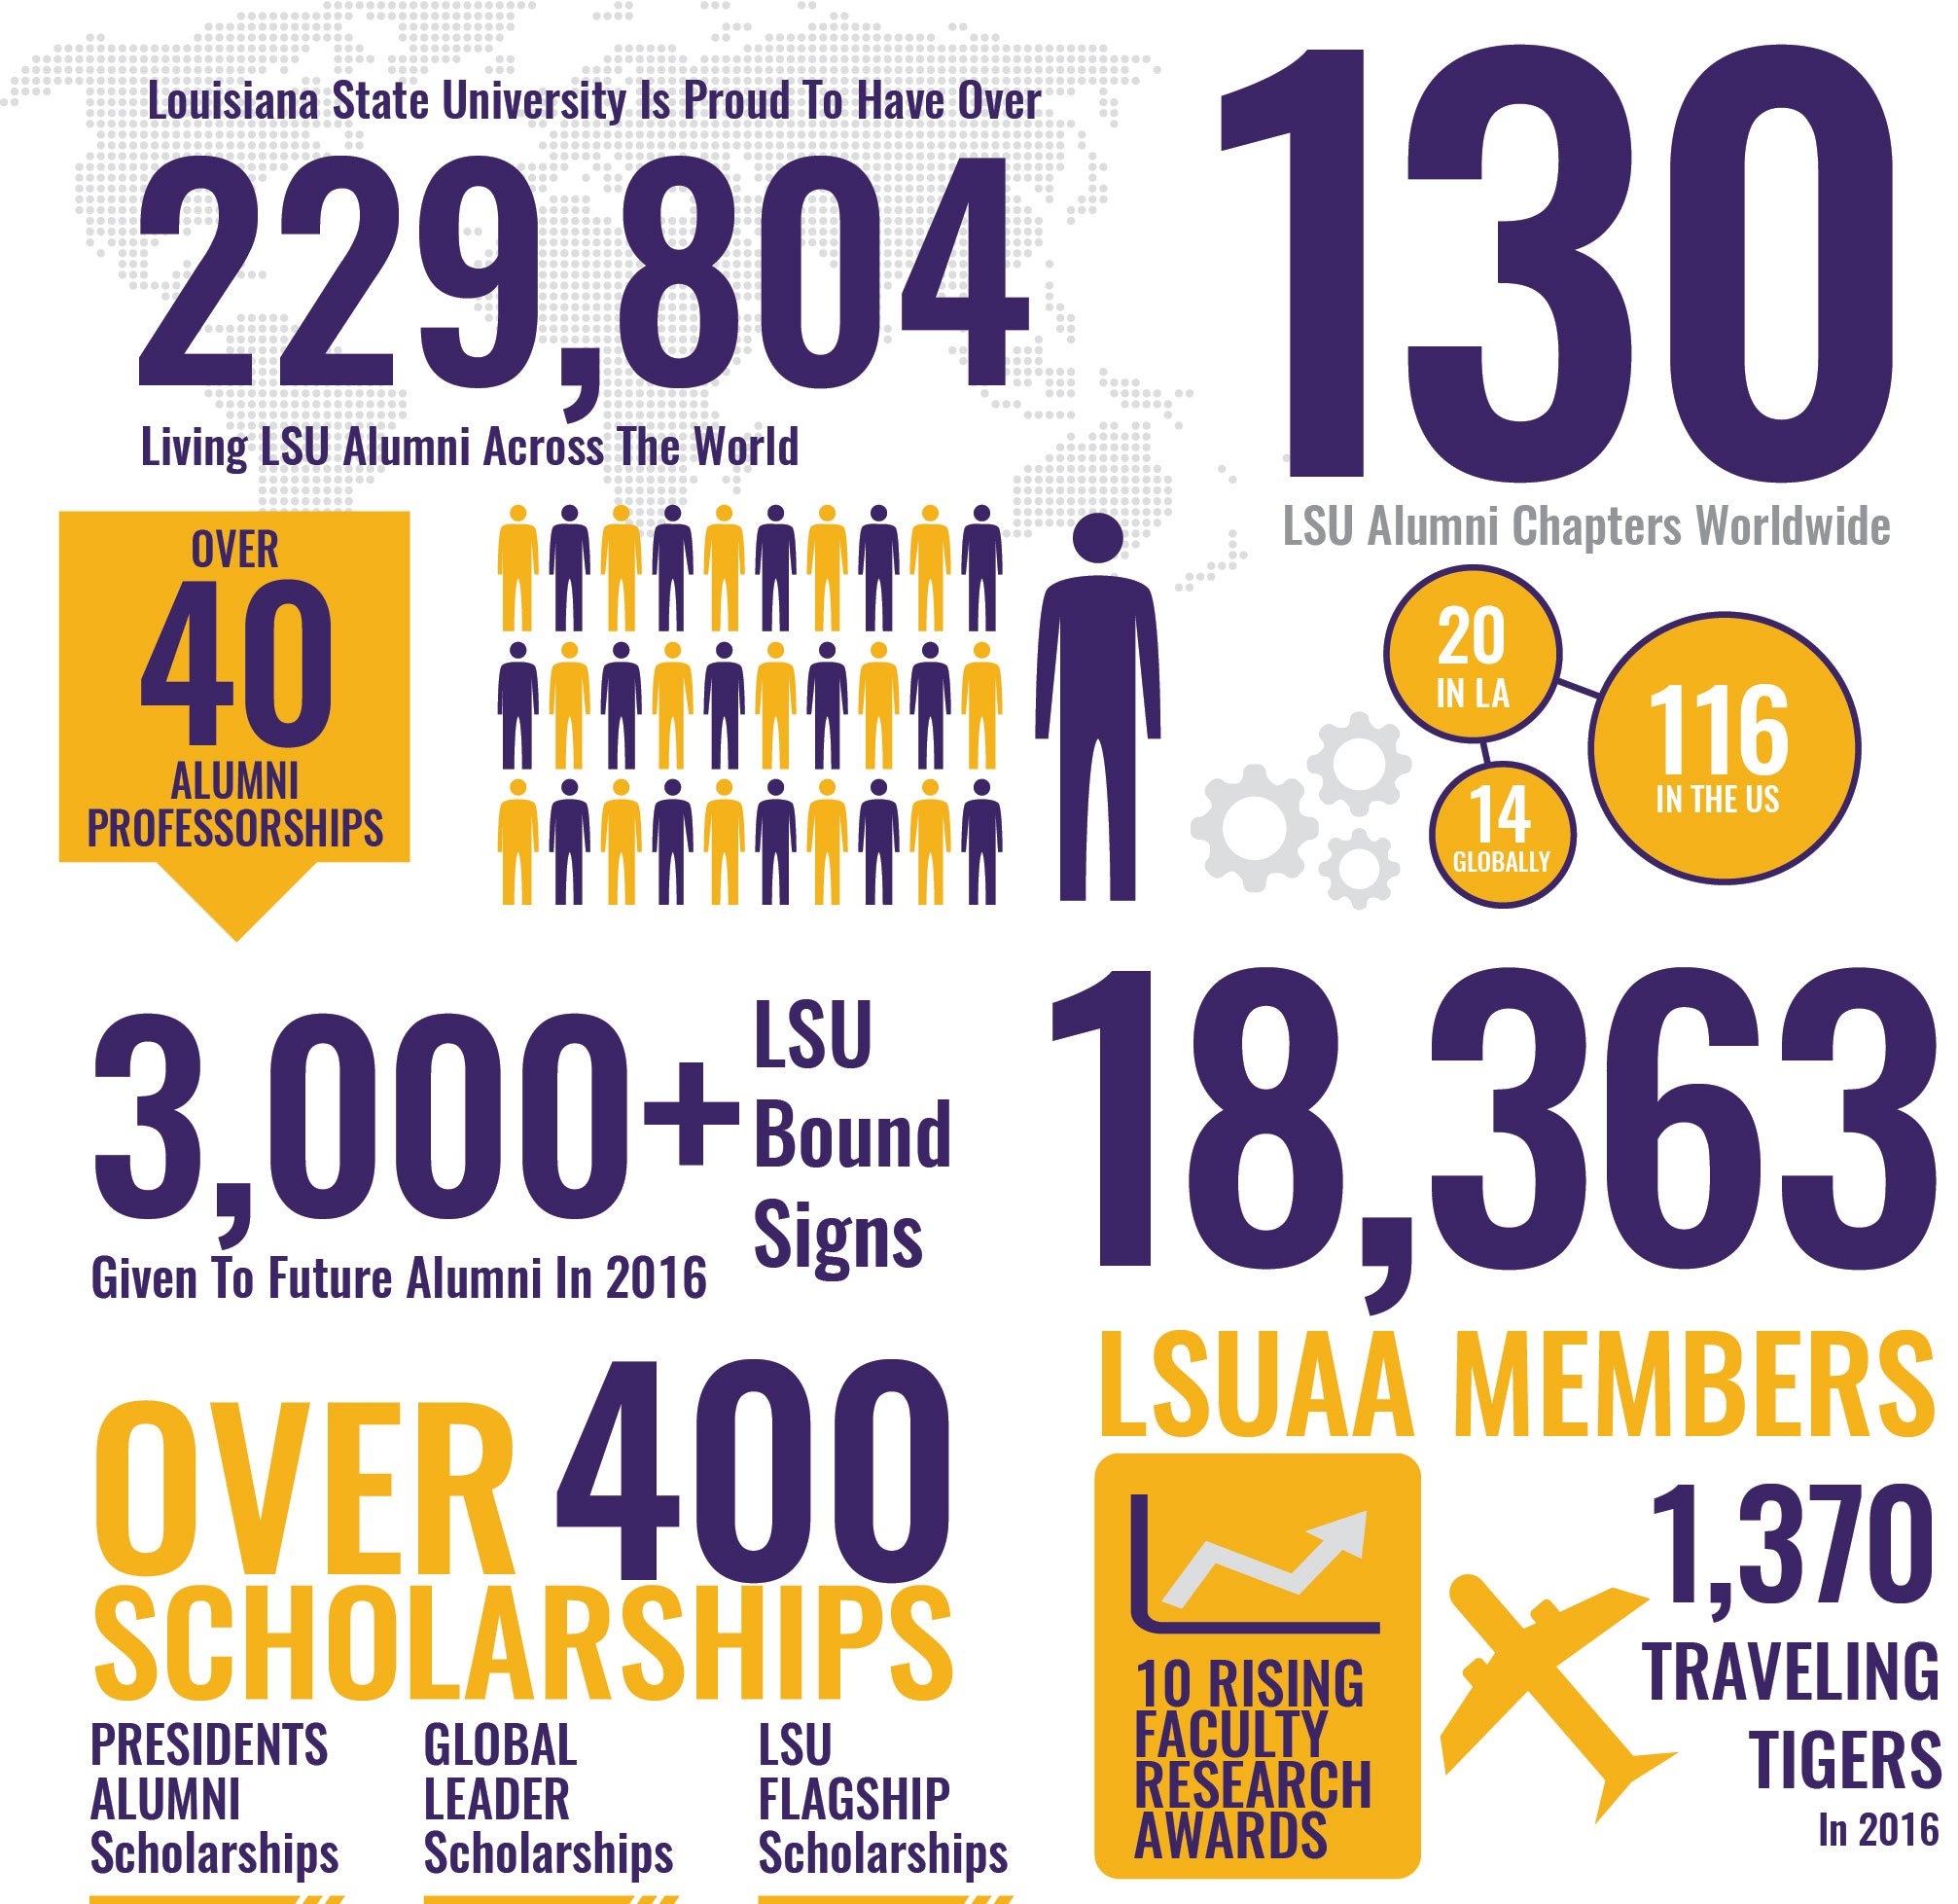 LSU-INFOGRAPHIC-v2opt2.jpg